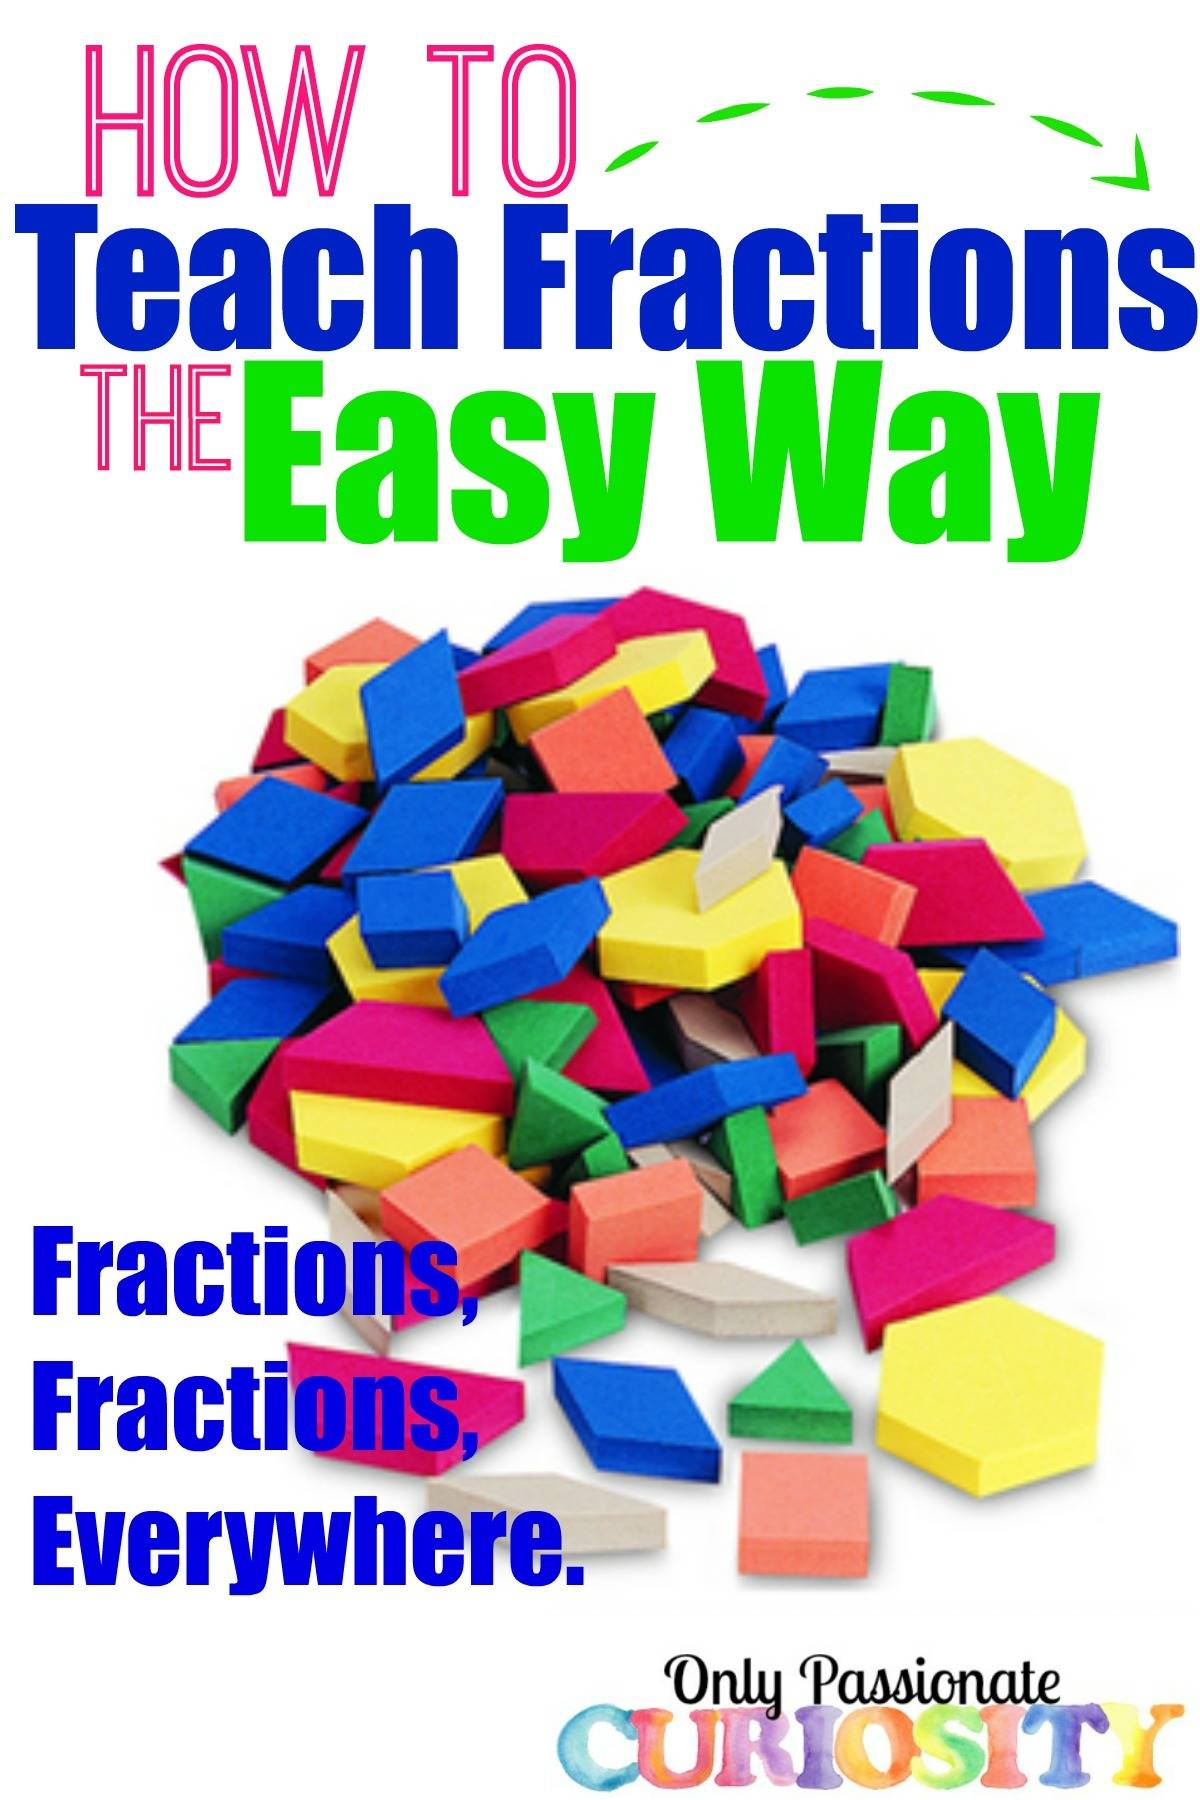 How to Teach Fractions the Easy Way